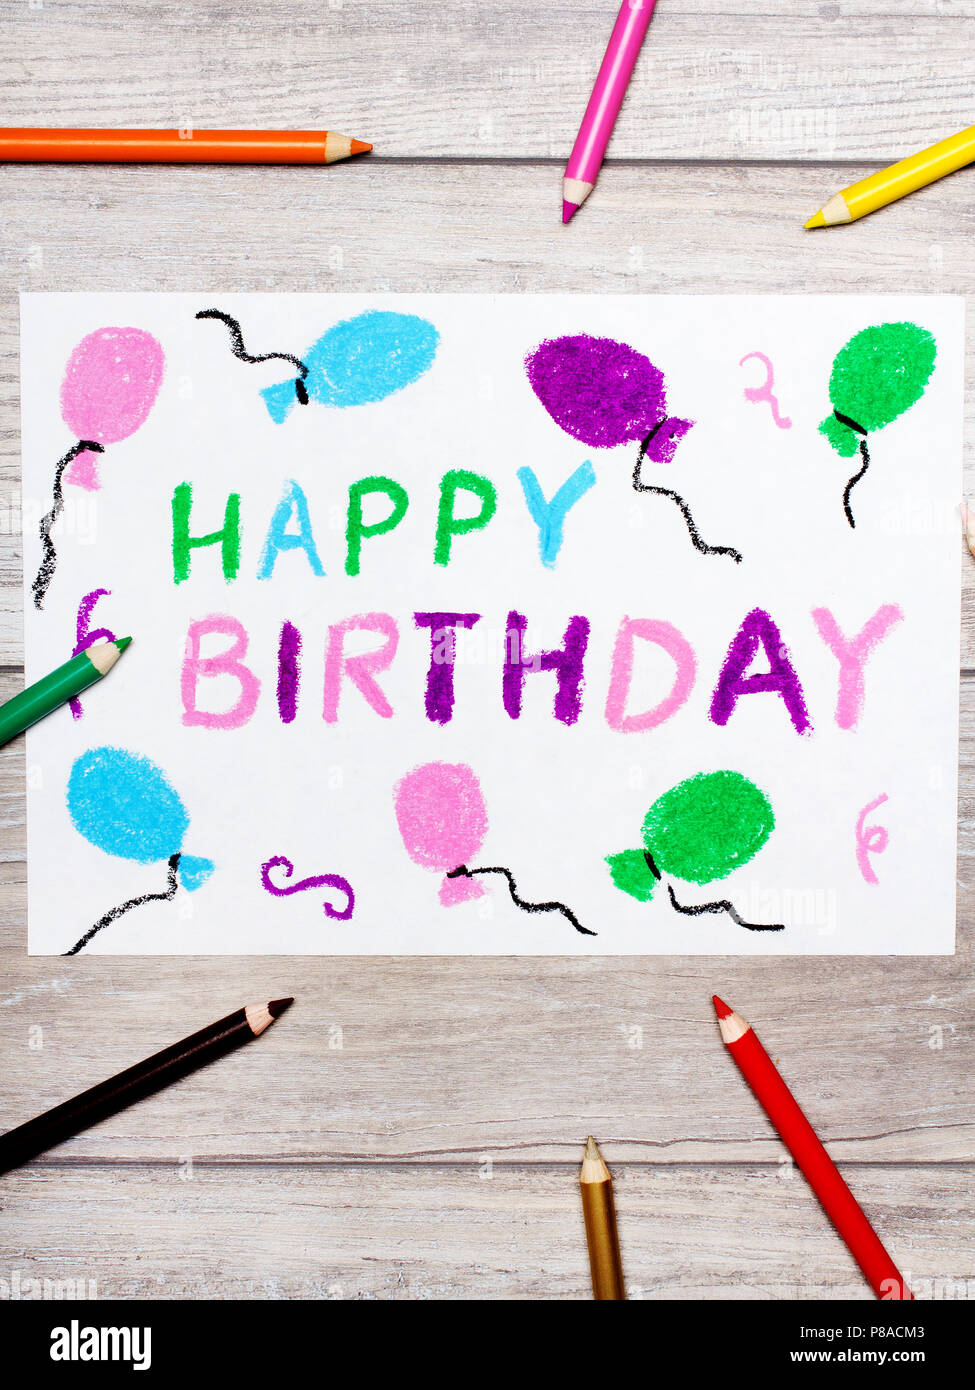 Photo Of Colorful Drawing Happy Birthday Card On Wooden Background